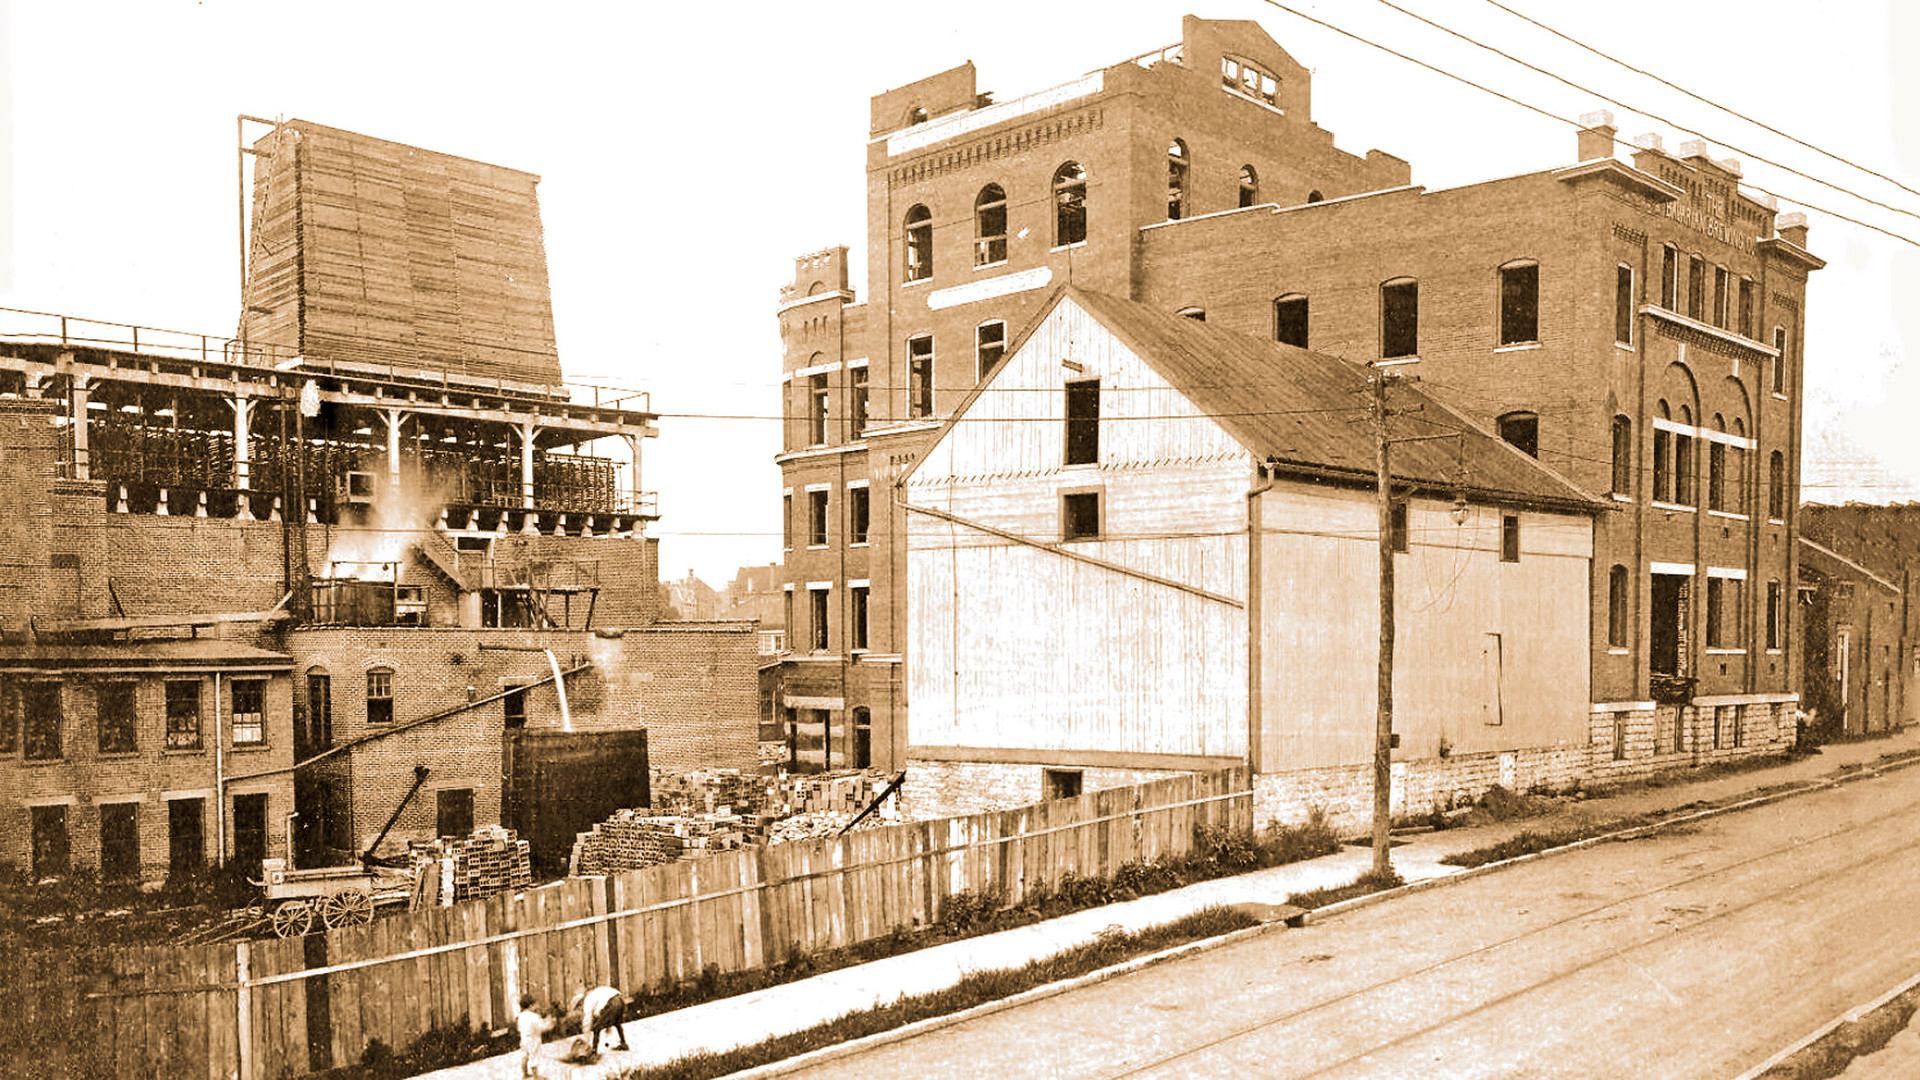 Brewery Buildings from 12th Street Bavarian Brewing Co., Covington, KY, in 1911.